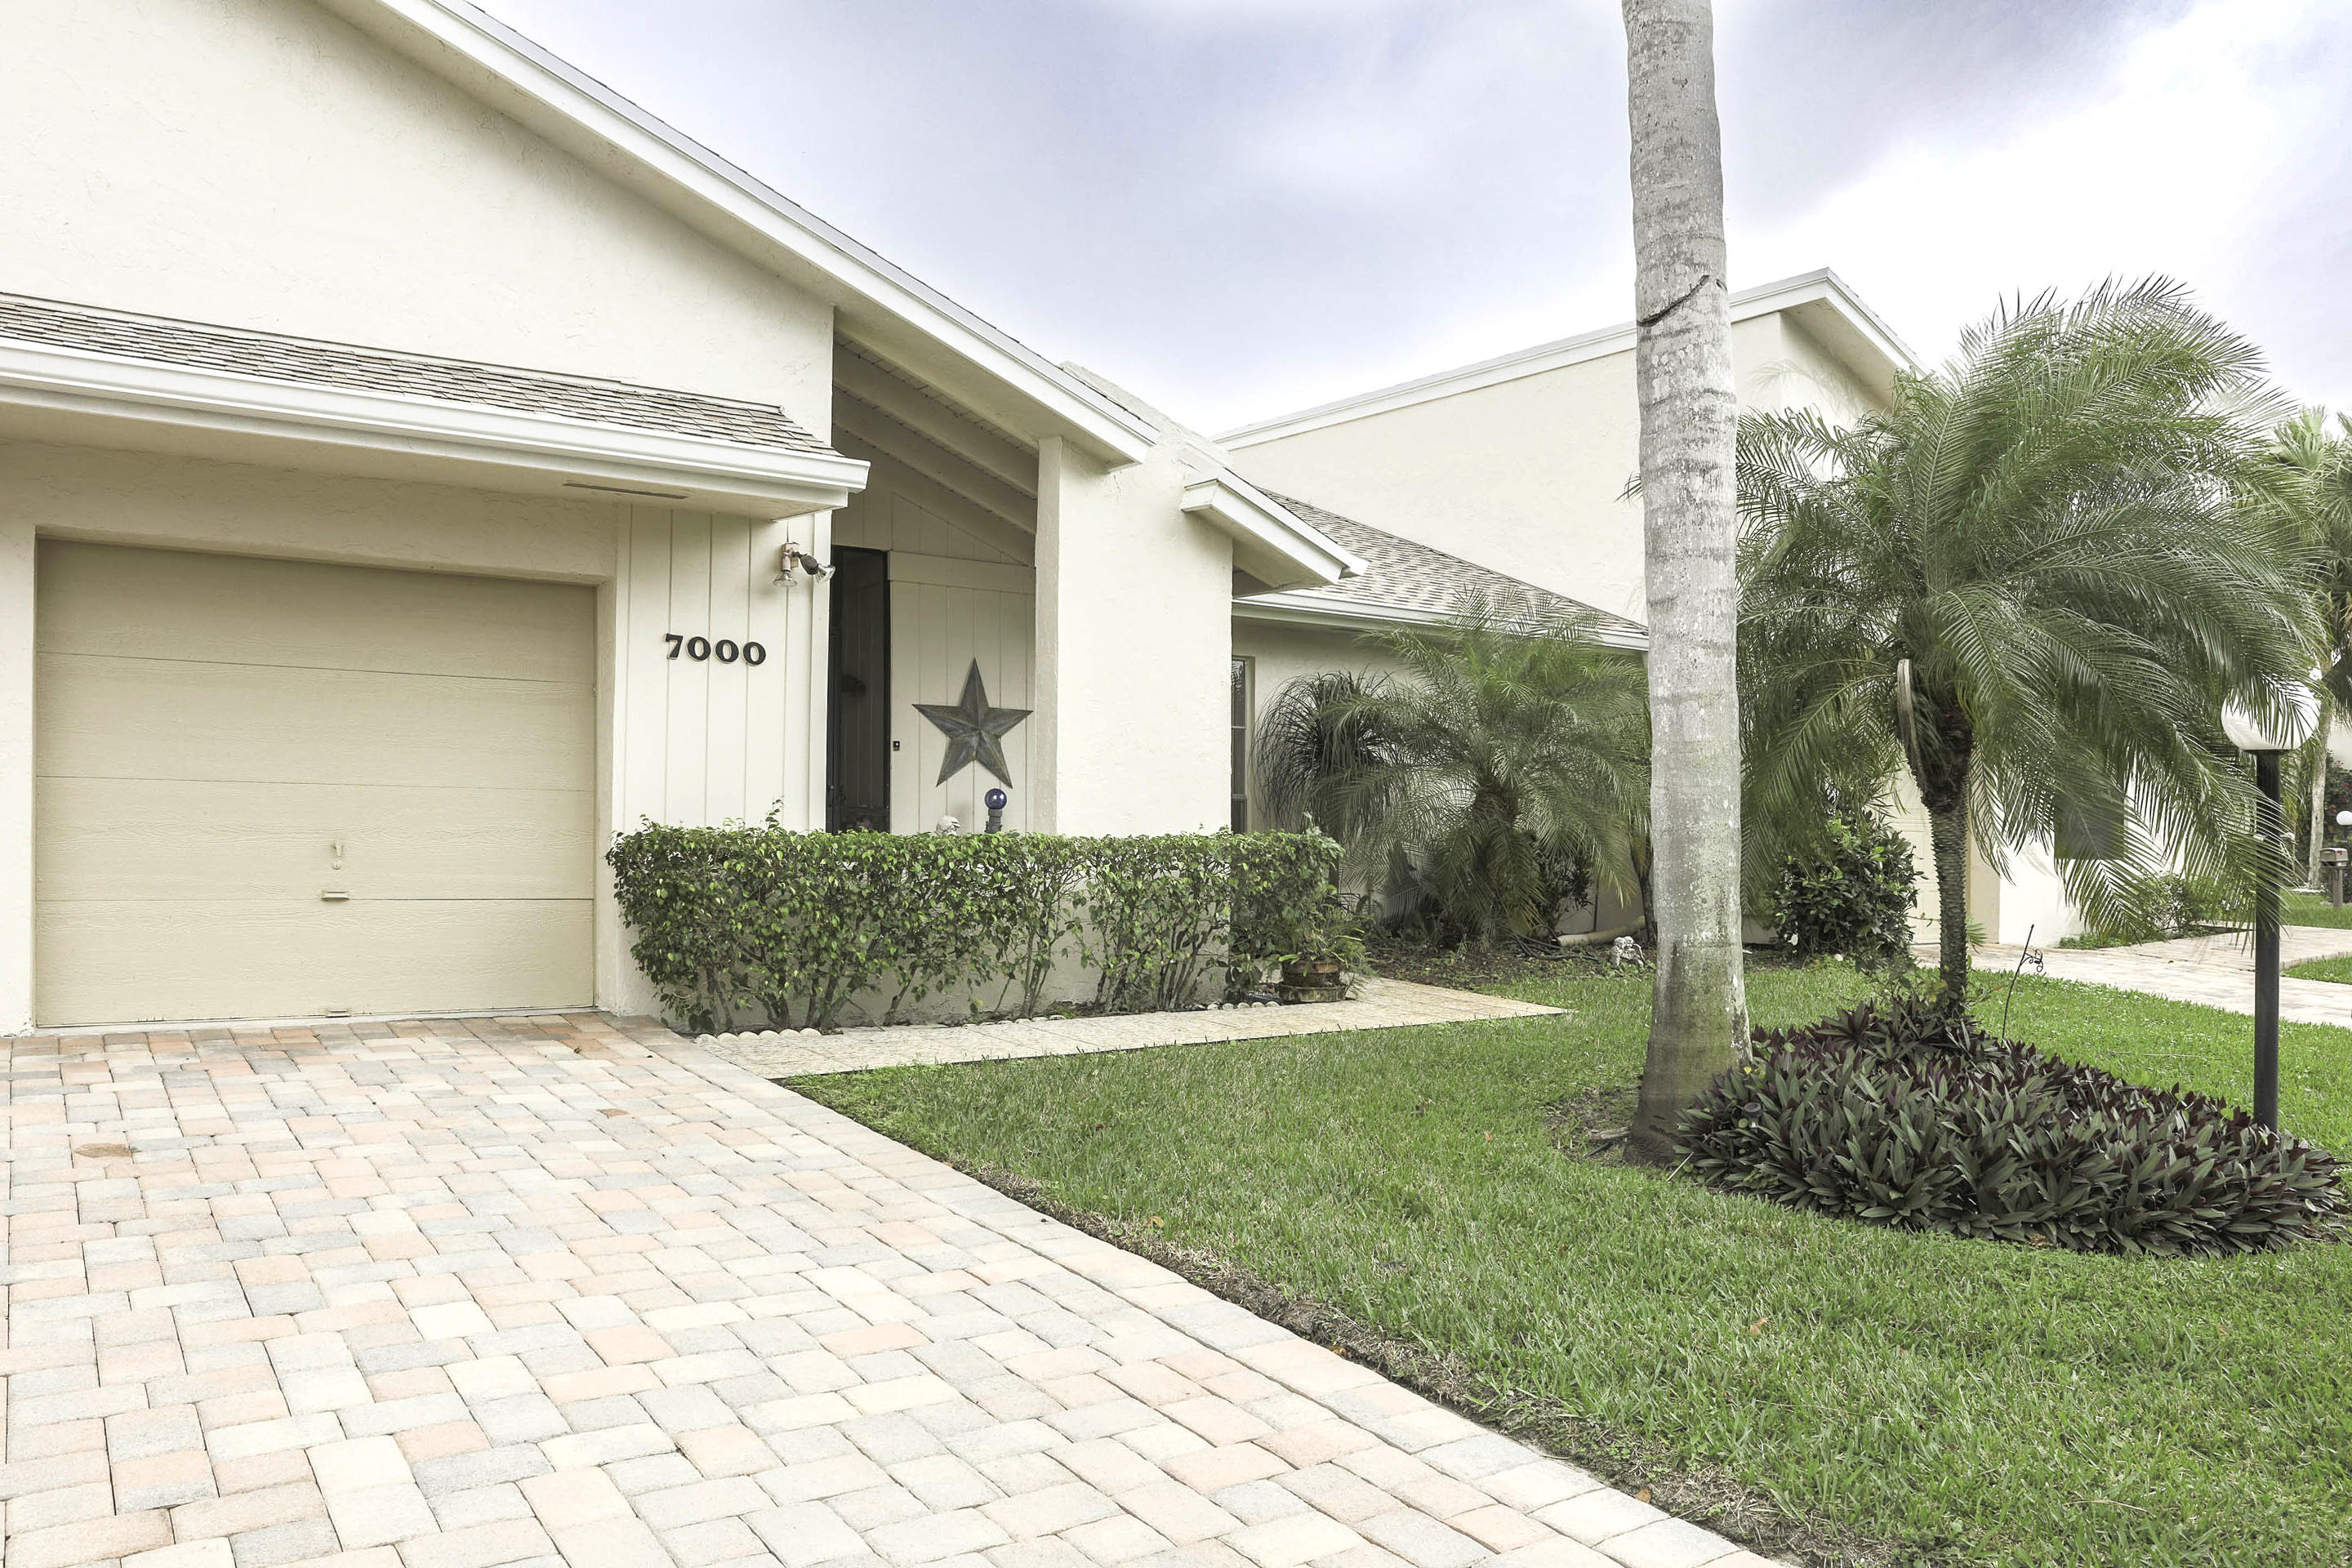 Home for sale in Poinciana Lake Worth Florida